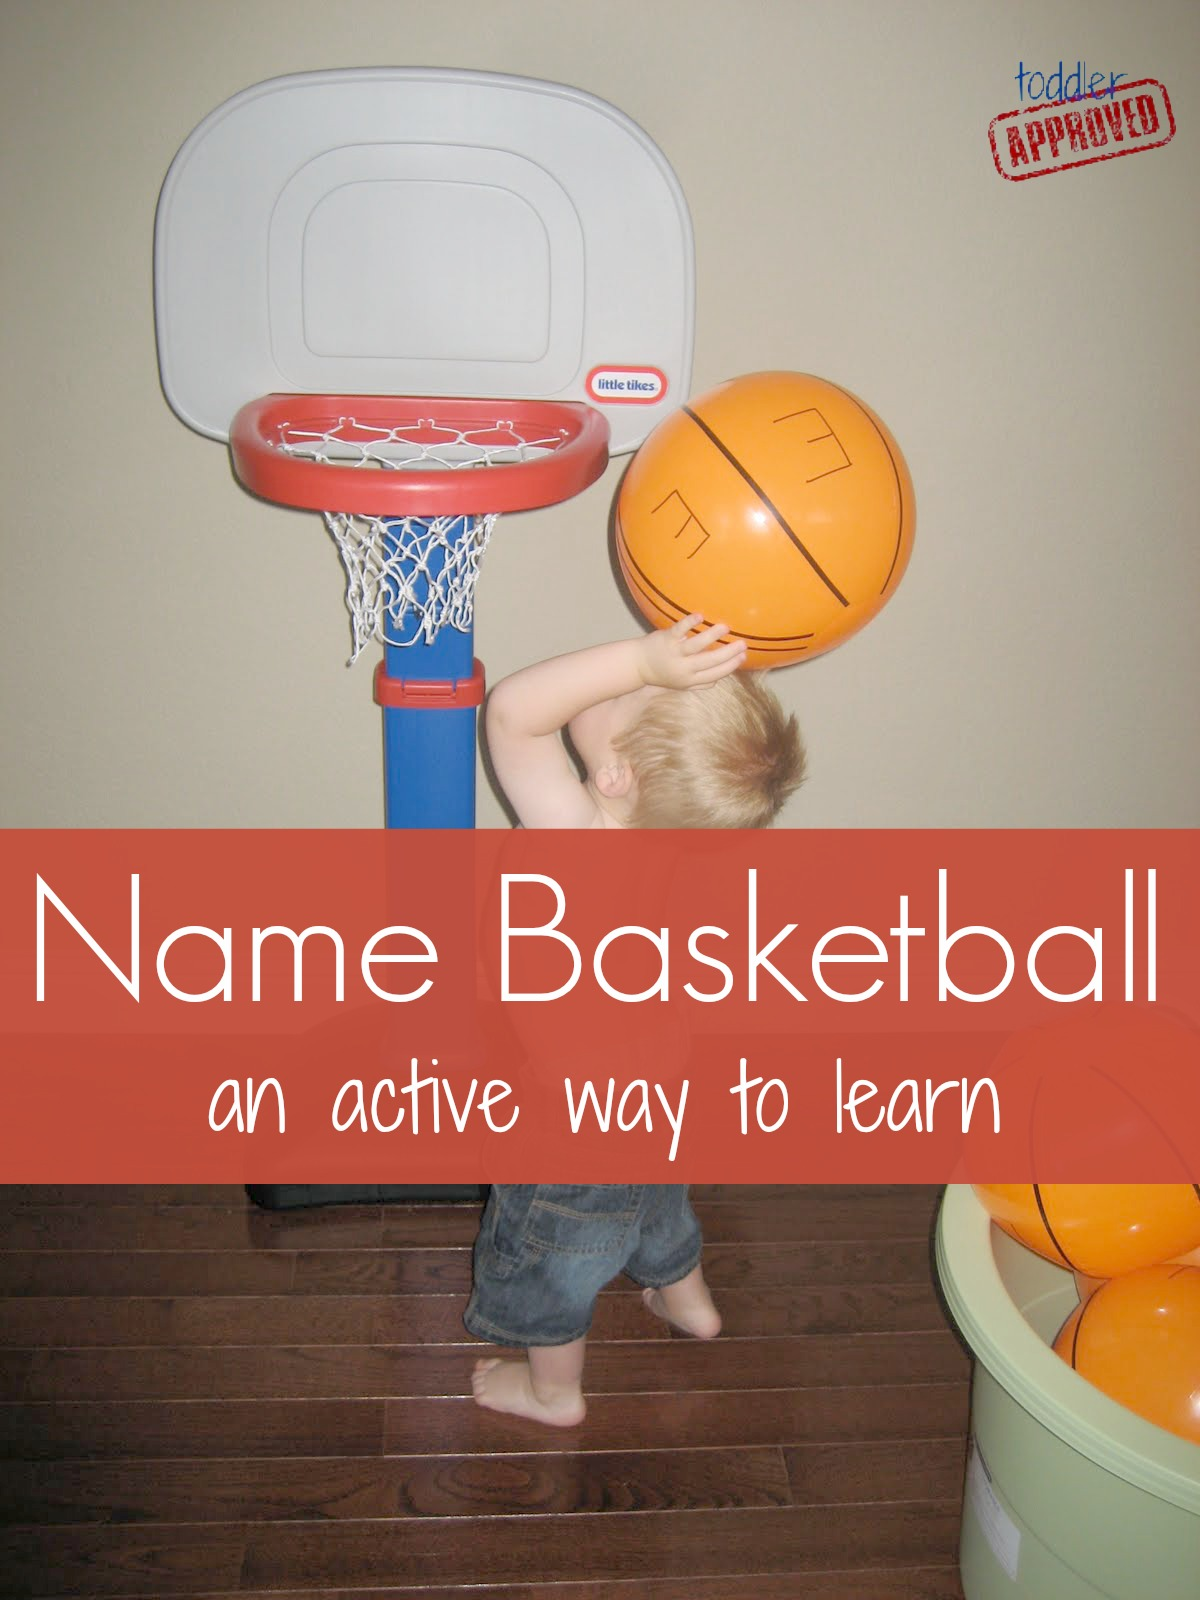 Toddler Approved Name Basketball